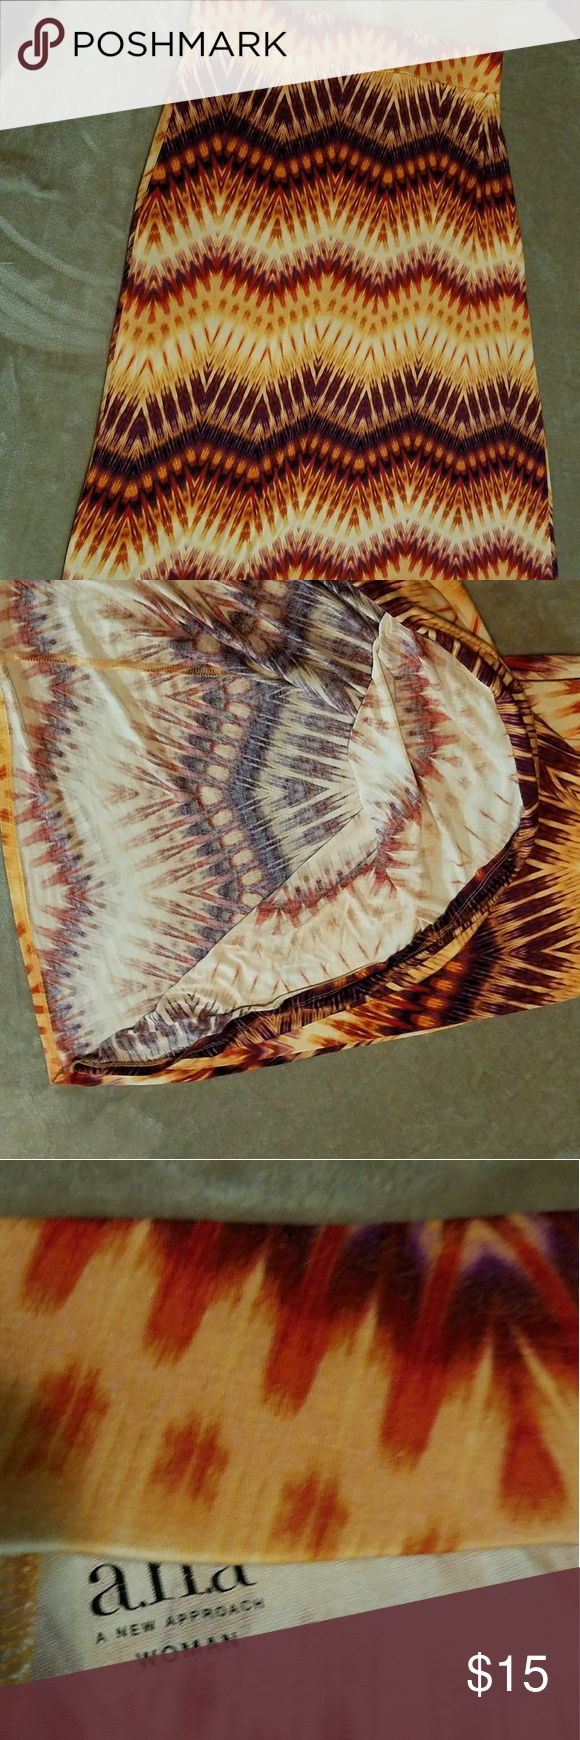 Ana maxi skirt size 1x Plus size maxi skirt with an Aztec design. The colors are orange, pinkish red, purple and cream. It went very well with an orange tank top. Barely worn due to weight loss (Not bragging,  just explaining ??). Very comfortable and pretty for spring and summer. ana Dresses Maxi